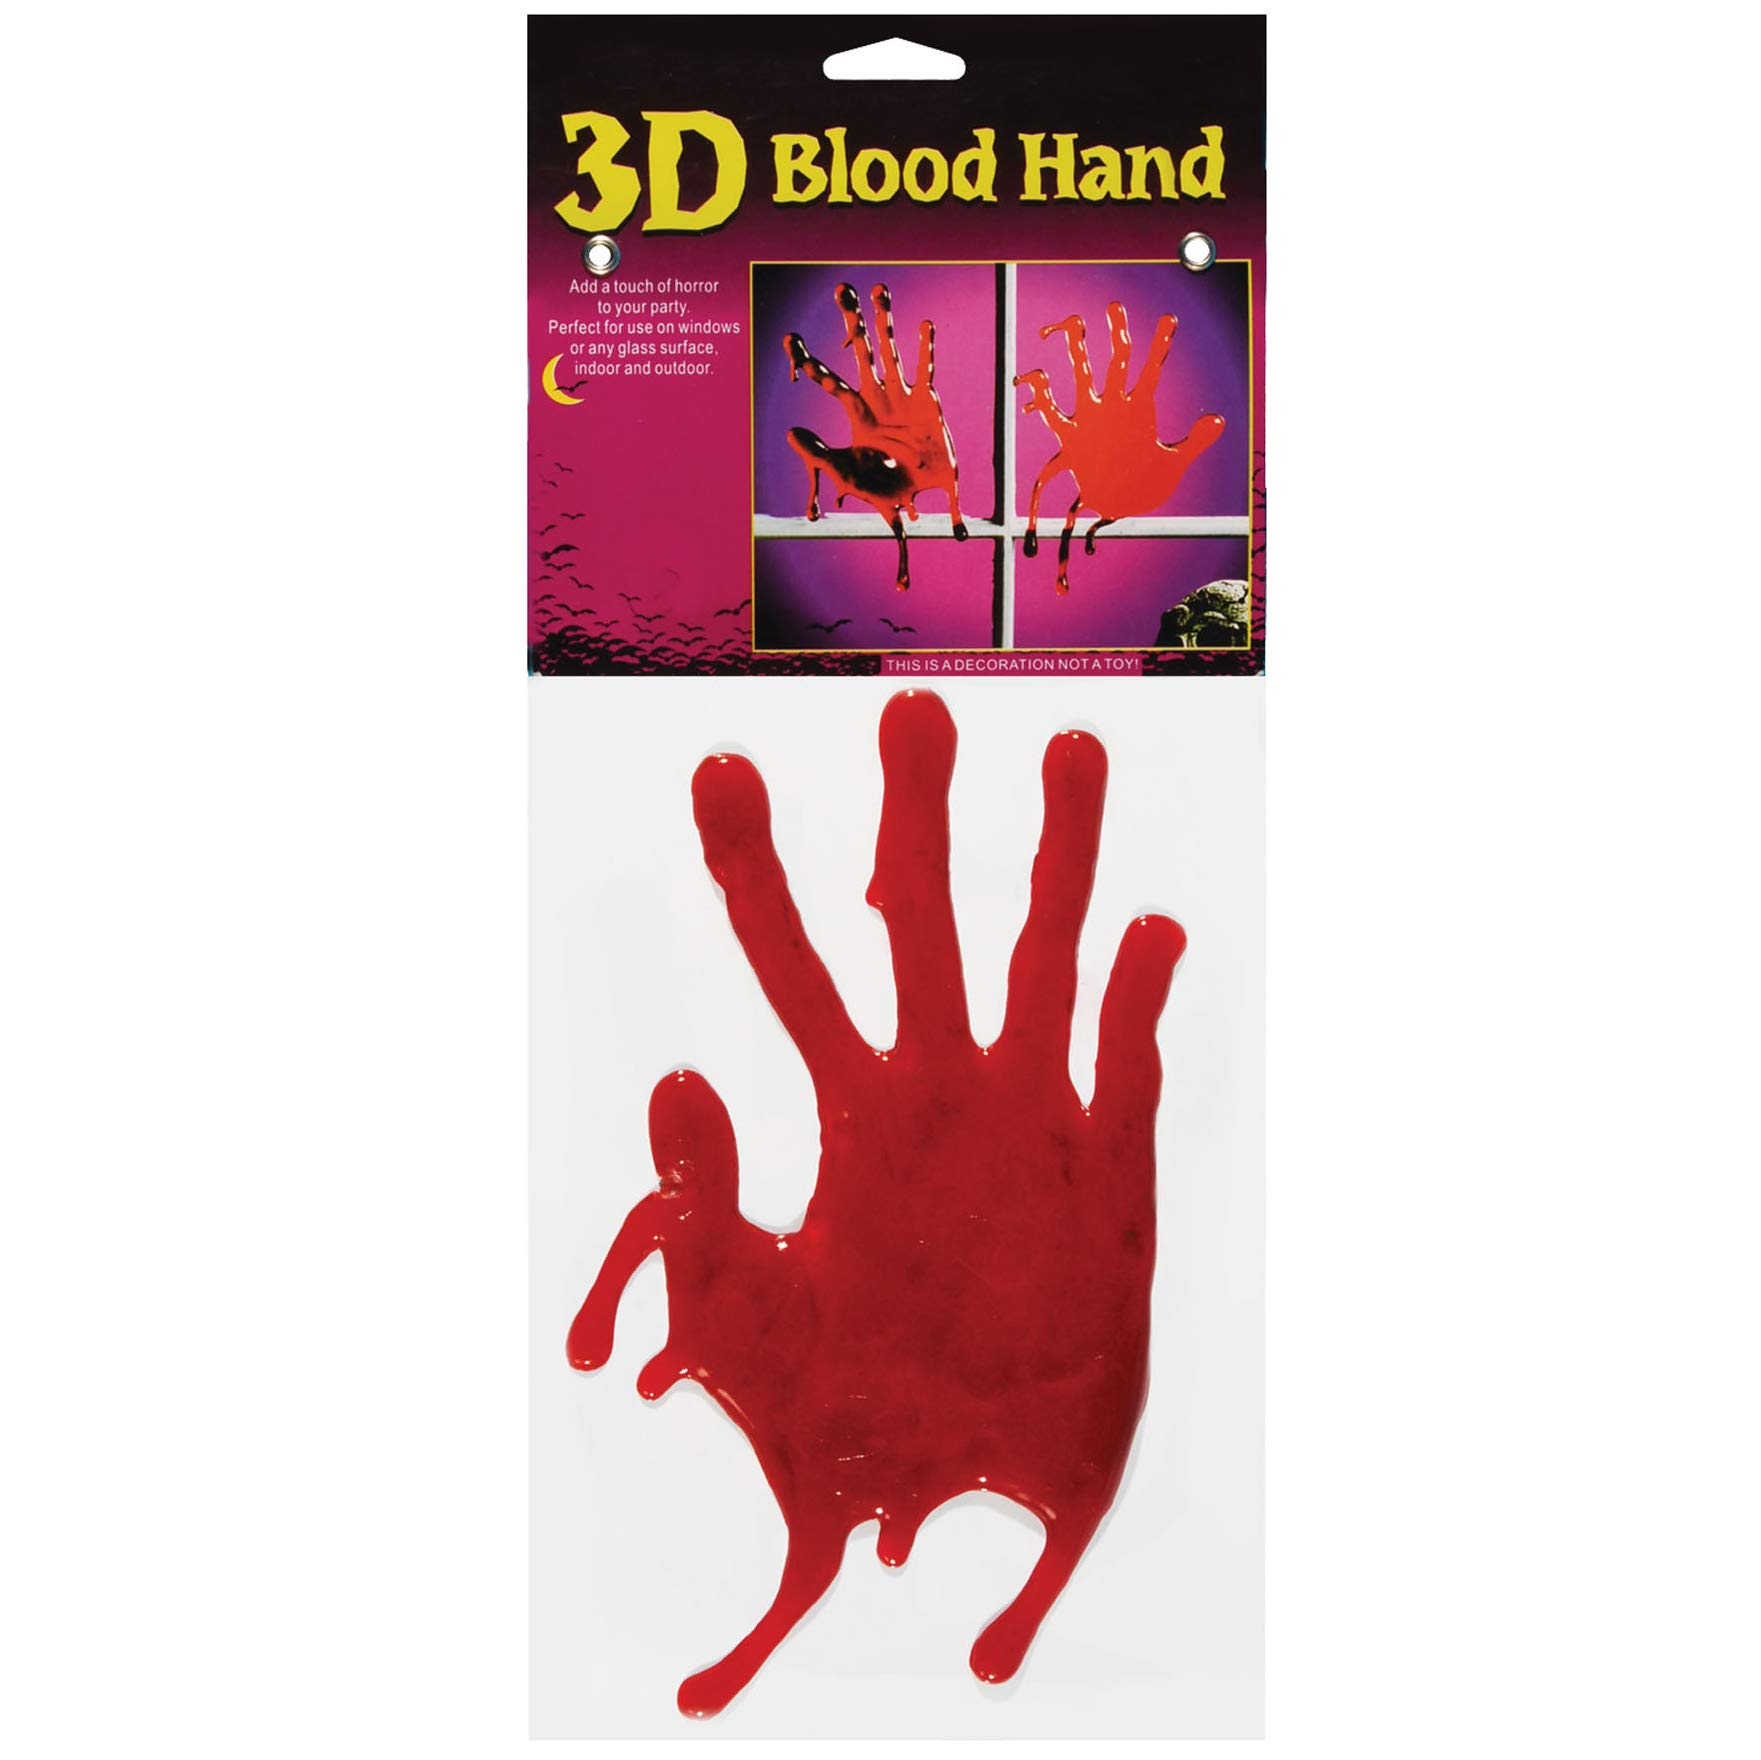 Veil Entertainment 3D Bloody Handprints Halloween Decoration 9'' Window Clings, Red, 12 Sets of 2 by Veil Entertainment